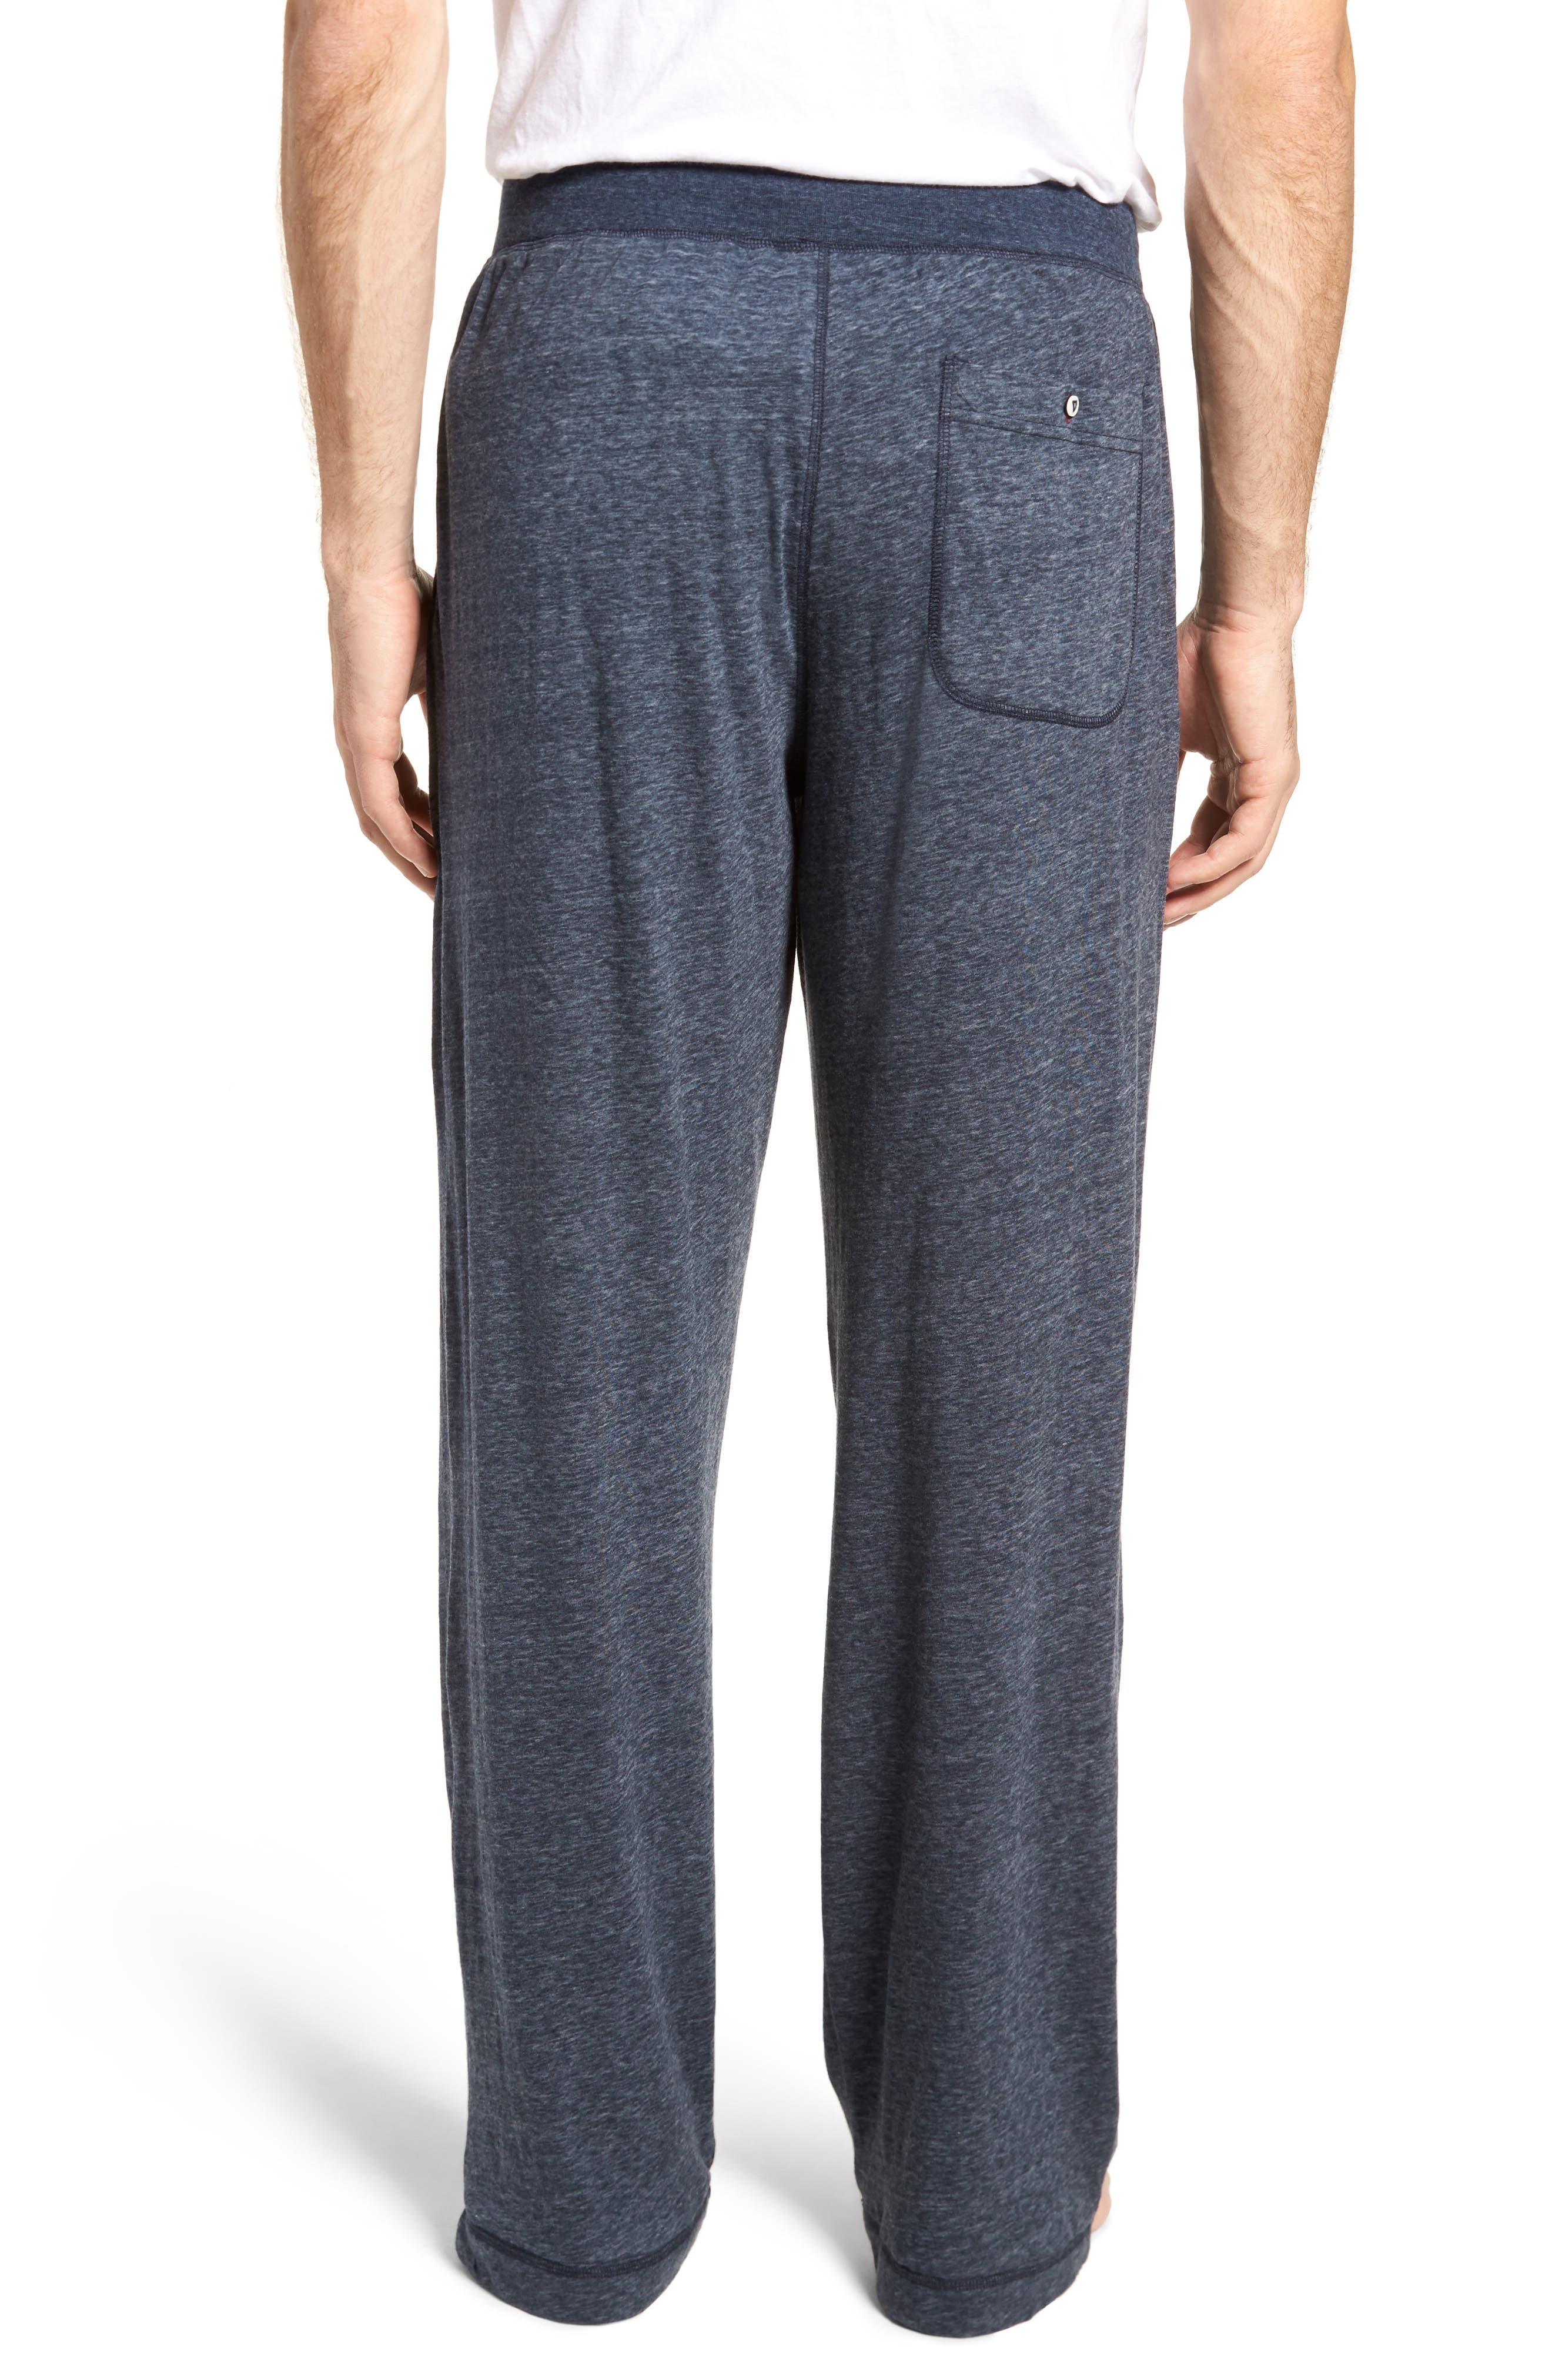 Recycled Cotton Blend Lounge Pants,                             Alternate thumbnail 2, color,                             Navy Heather